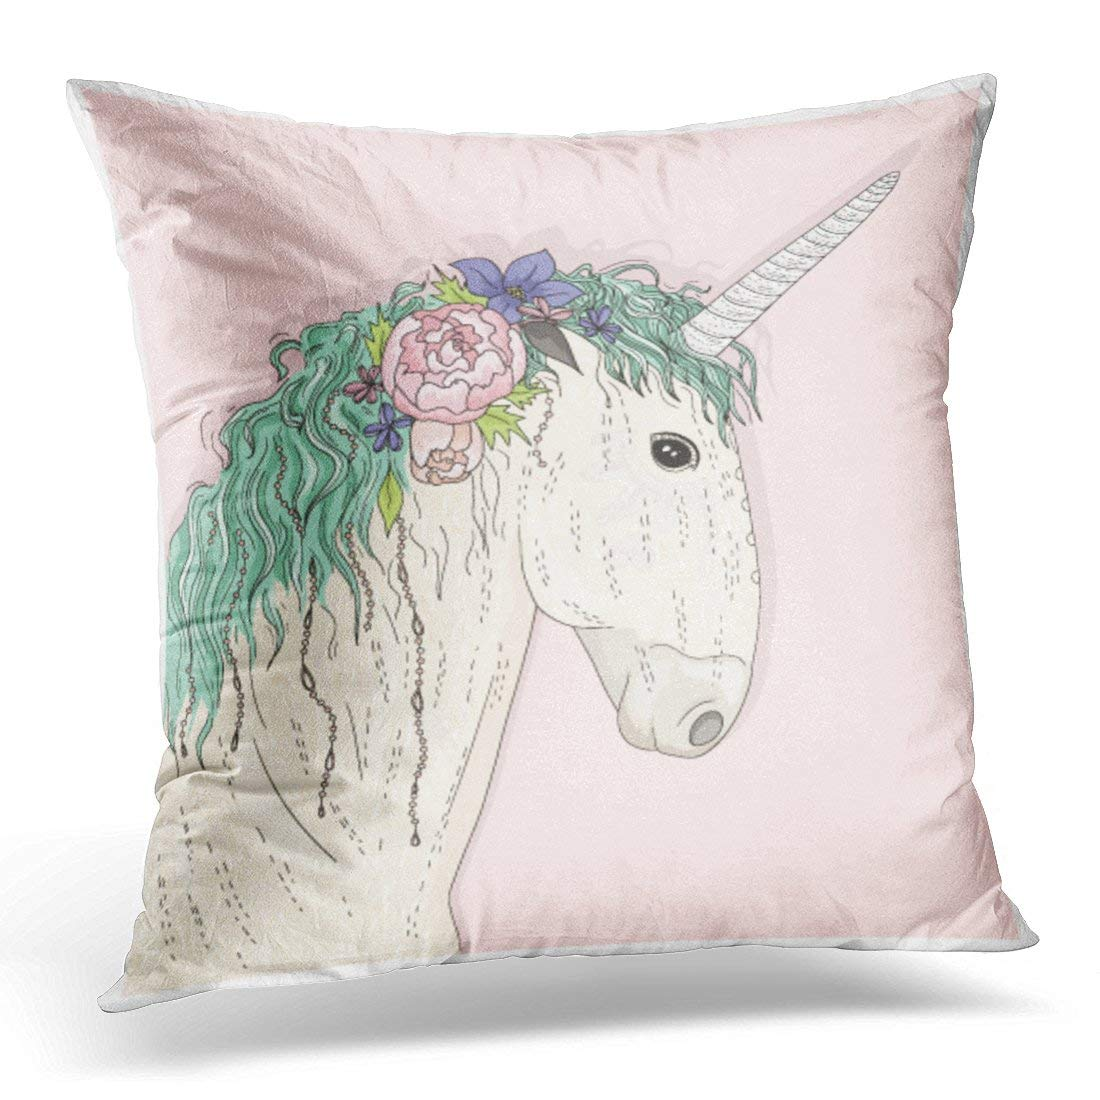 CMFUN Pink Animal Colorful Horse Cute Unicorn with Flowers Fairytale Children Green Abstract White Beautiful Pillow Case Cushion Cover 16x16 Inches